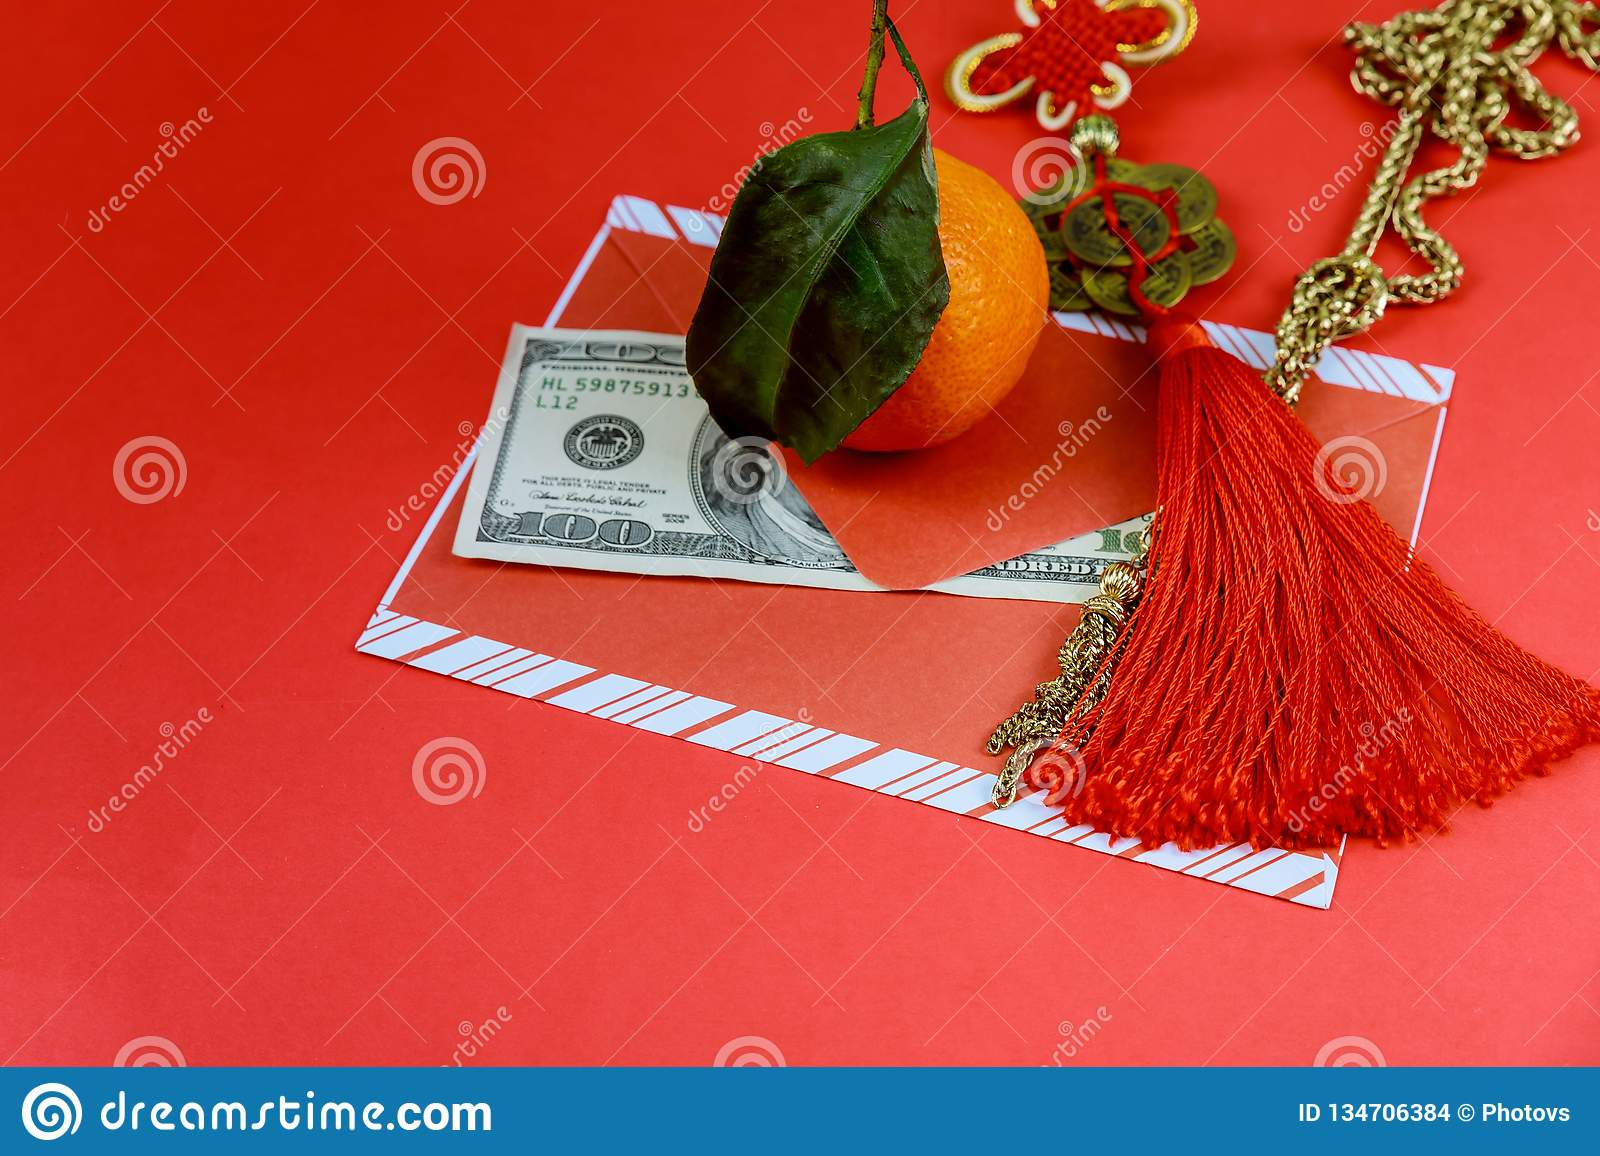 US dollars banknotes with red envelope in Chinese New Year